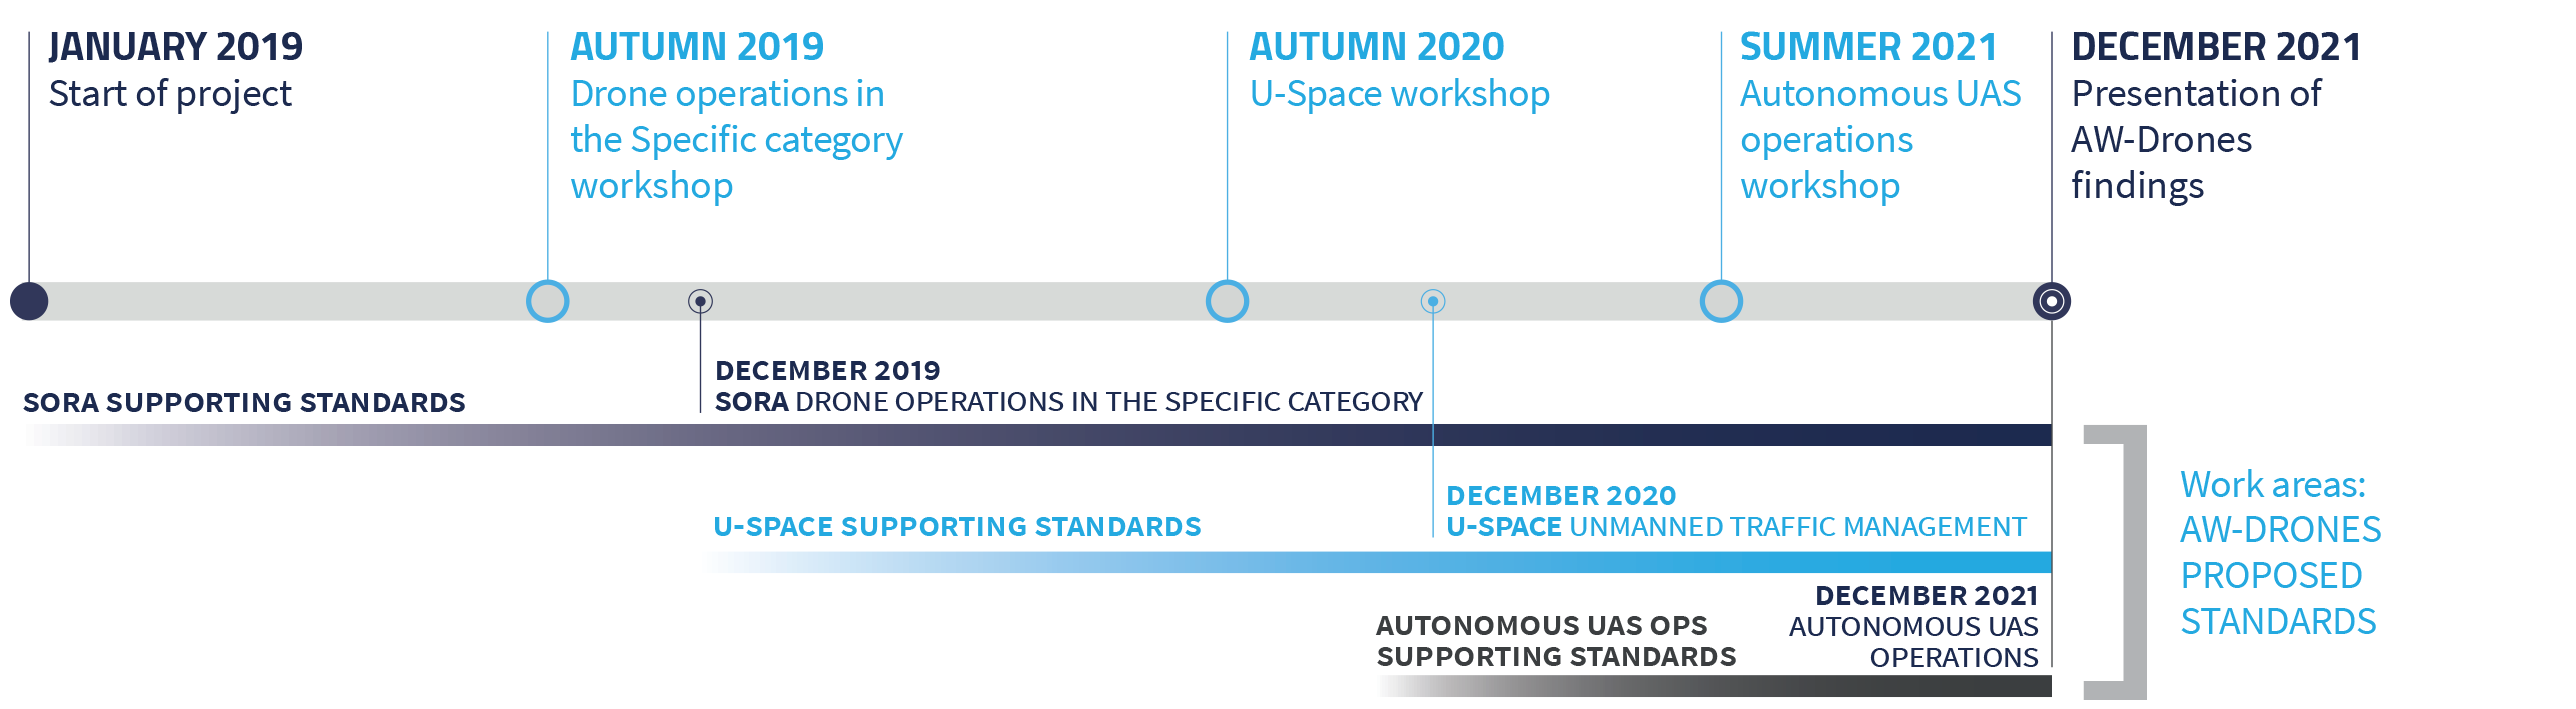 "January 2019: Start of the project Autumn 2019: ""Drone operations in the Specific category"" workshop December 2019: SORA - Drone operations in the specific category proposed standard Autumn 2020: ""U-Space"" workshop December 2020: U-Space - Unmanned traffic management proposed standard Summer 2021: ""Autonomous UAS operations"" workshop December 2021: Autonomous UAS operations proposed standard December 2021: Presentation of AW-Drones findings"